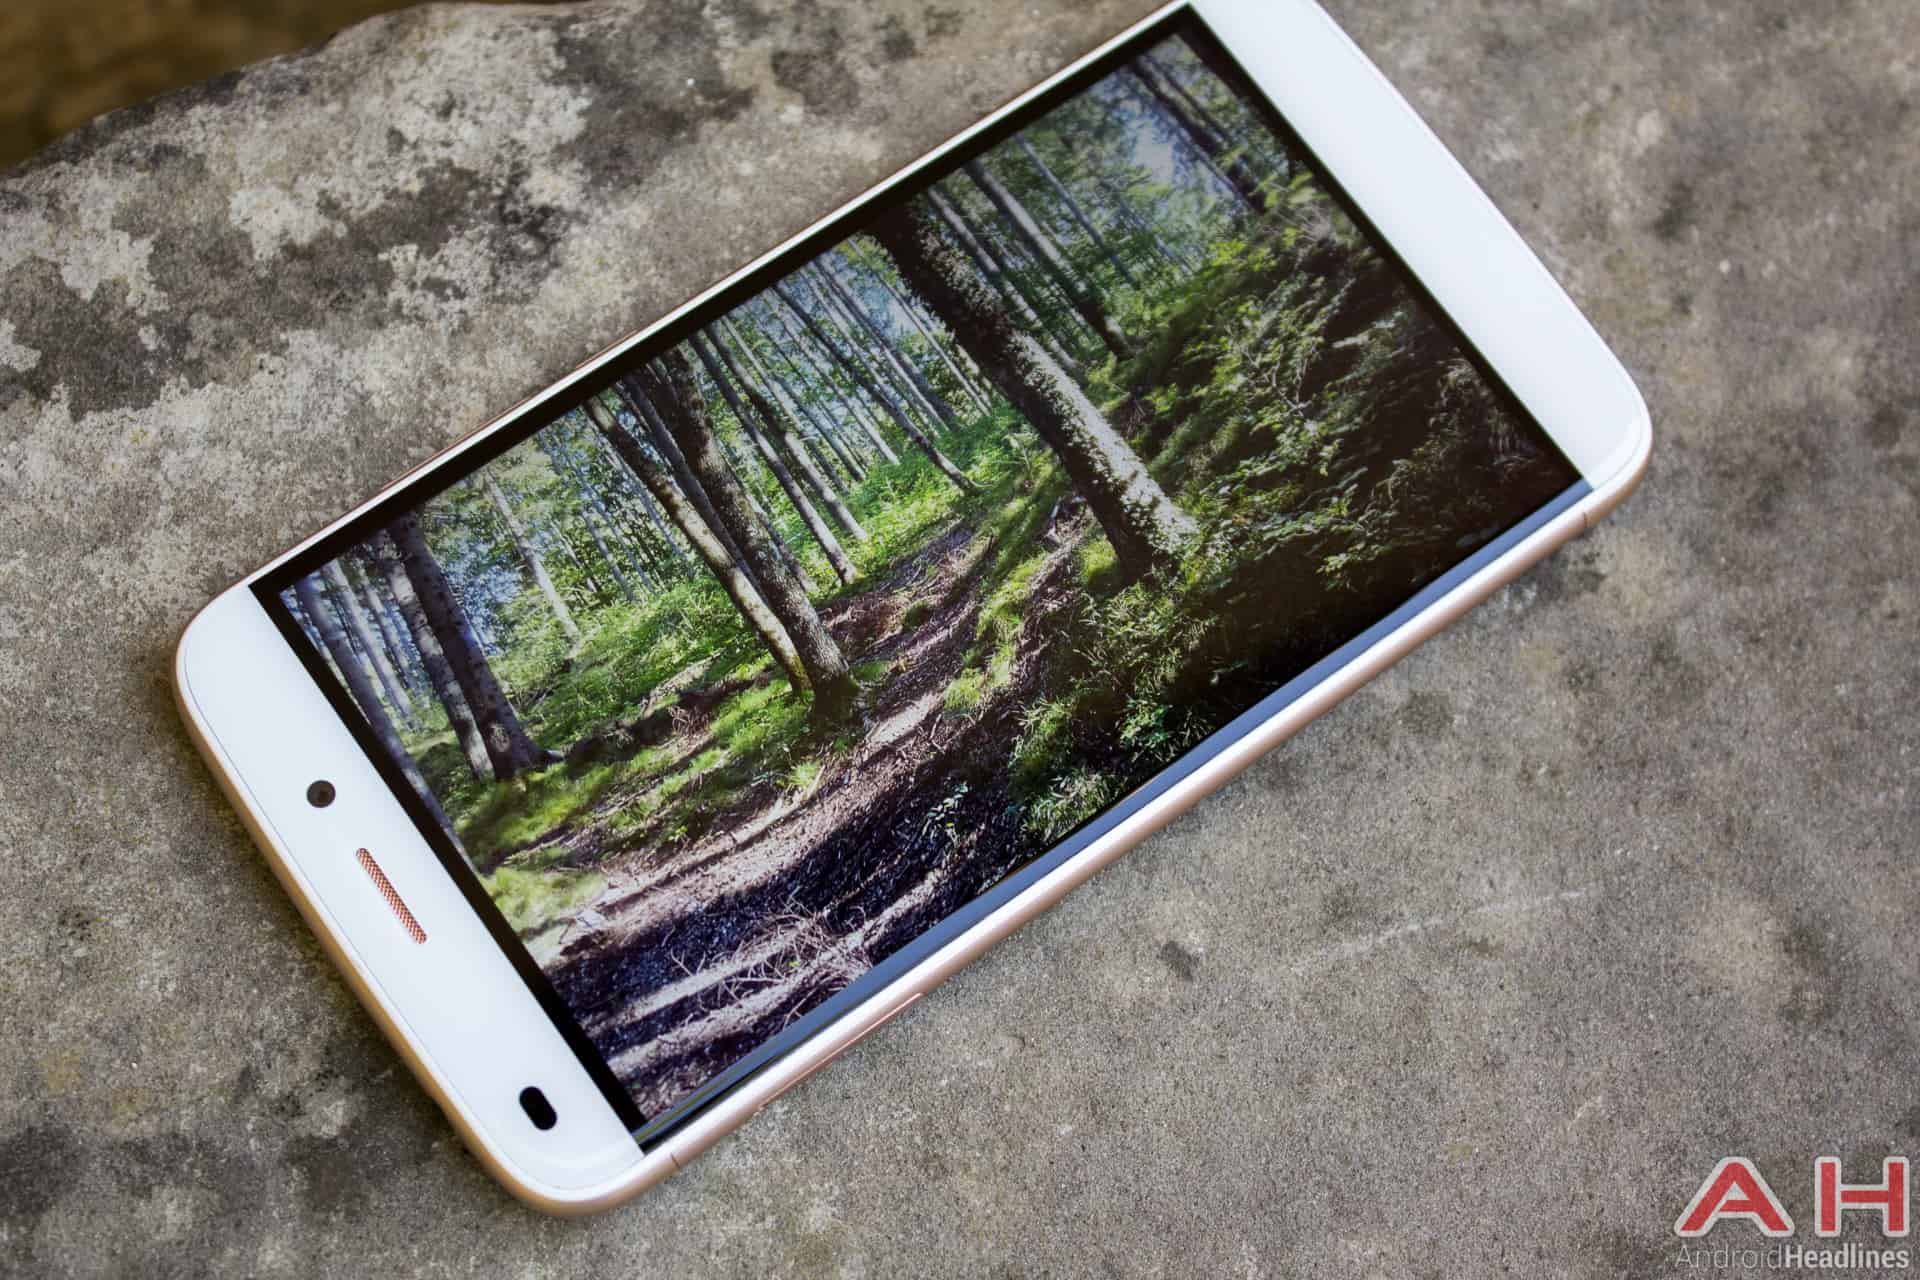 Oukitel-U10-AH-display